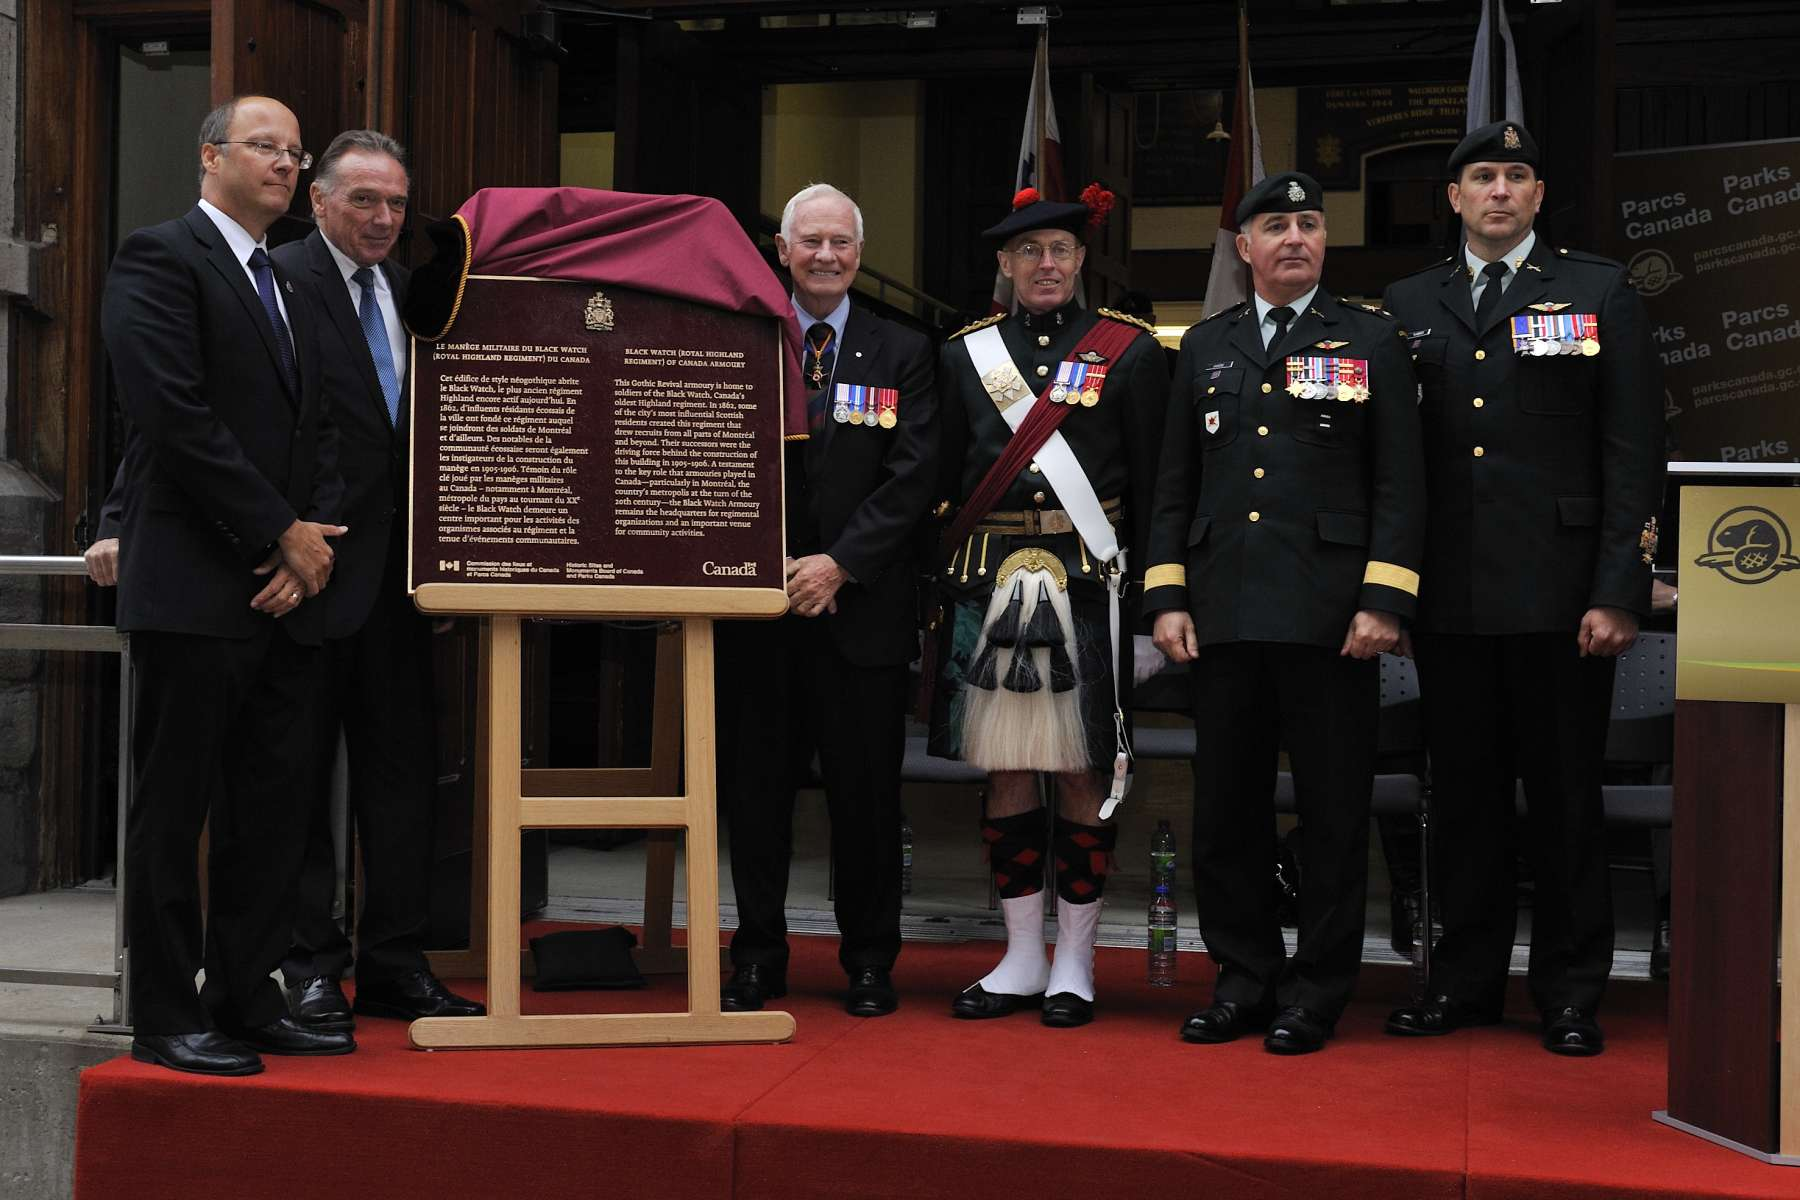 Joined by the Honourable Peter Kent, Canada's Environment Minister and Minister responsible for Parks Canada (left), and in the presence of the Regiment's members and their families, the Governor General unveiled the plaque.